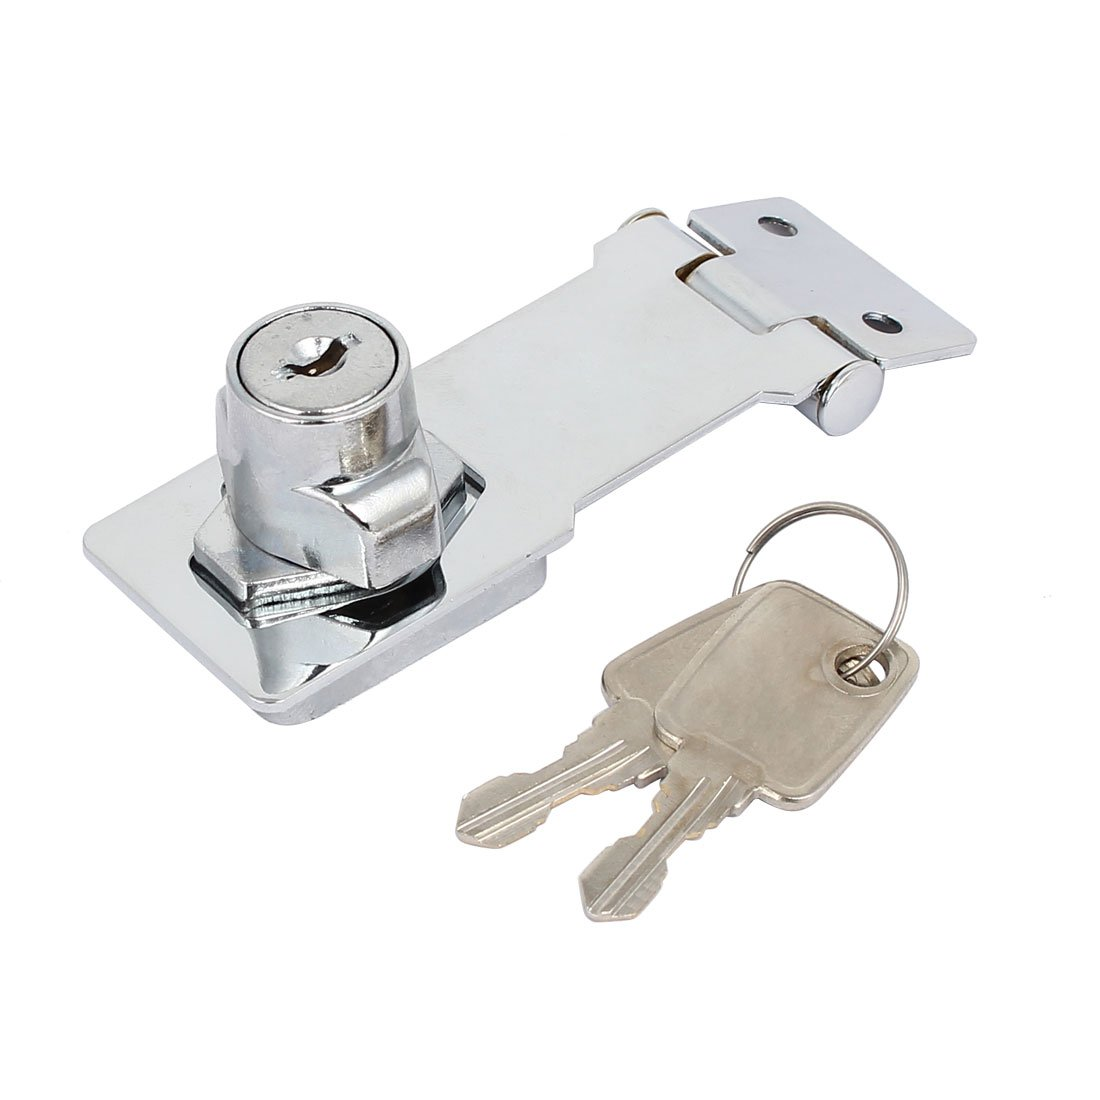 uxcell Cabinet Mailbox 3-inch Long Keyed Entry Safety Guard Hasp Lock Latch w Screws